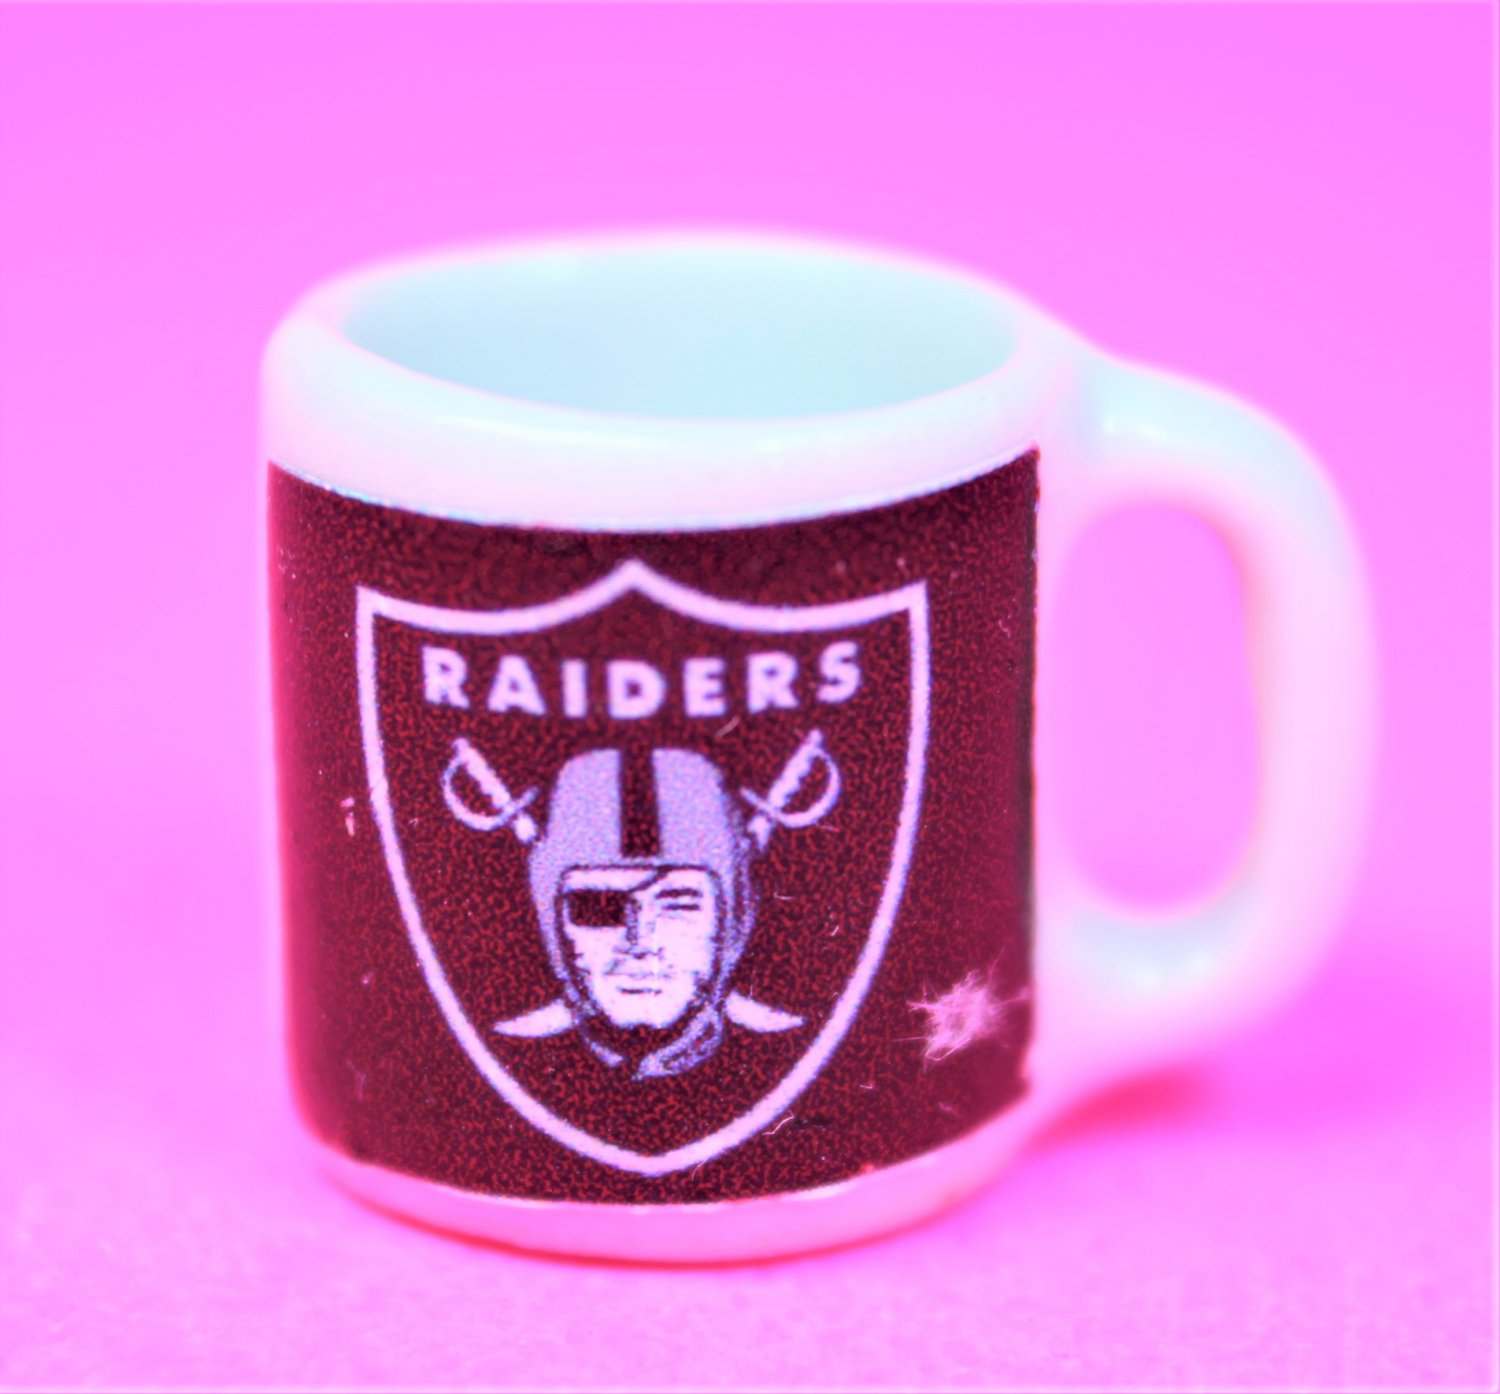 "Dollhouse miniature size 1/12"" scale replica Raiders sports coffee mug"